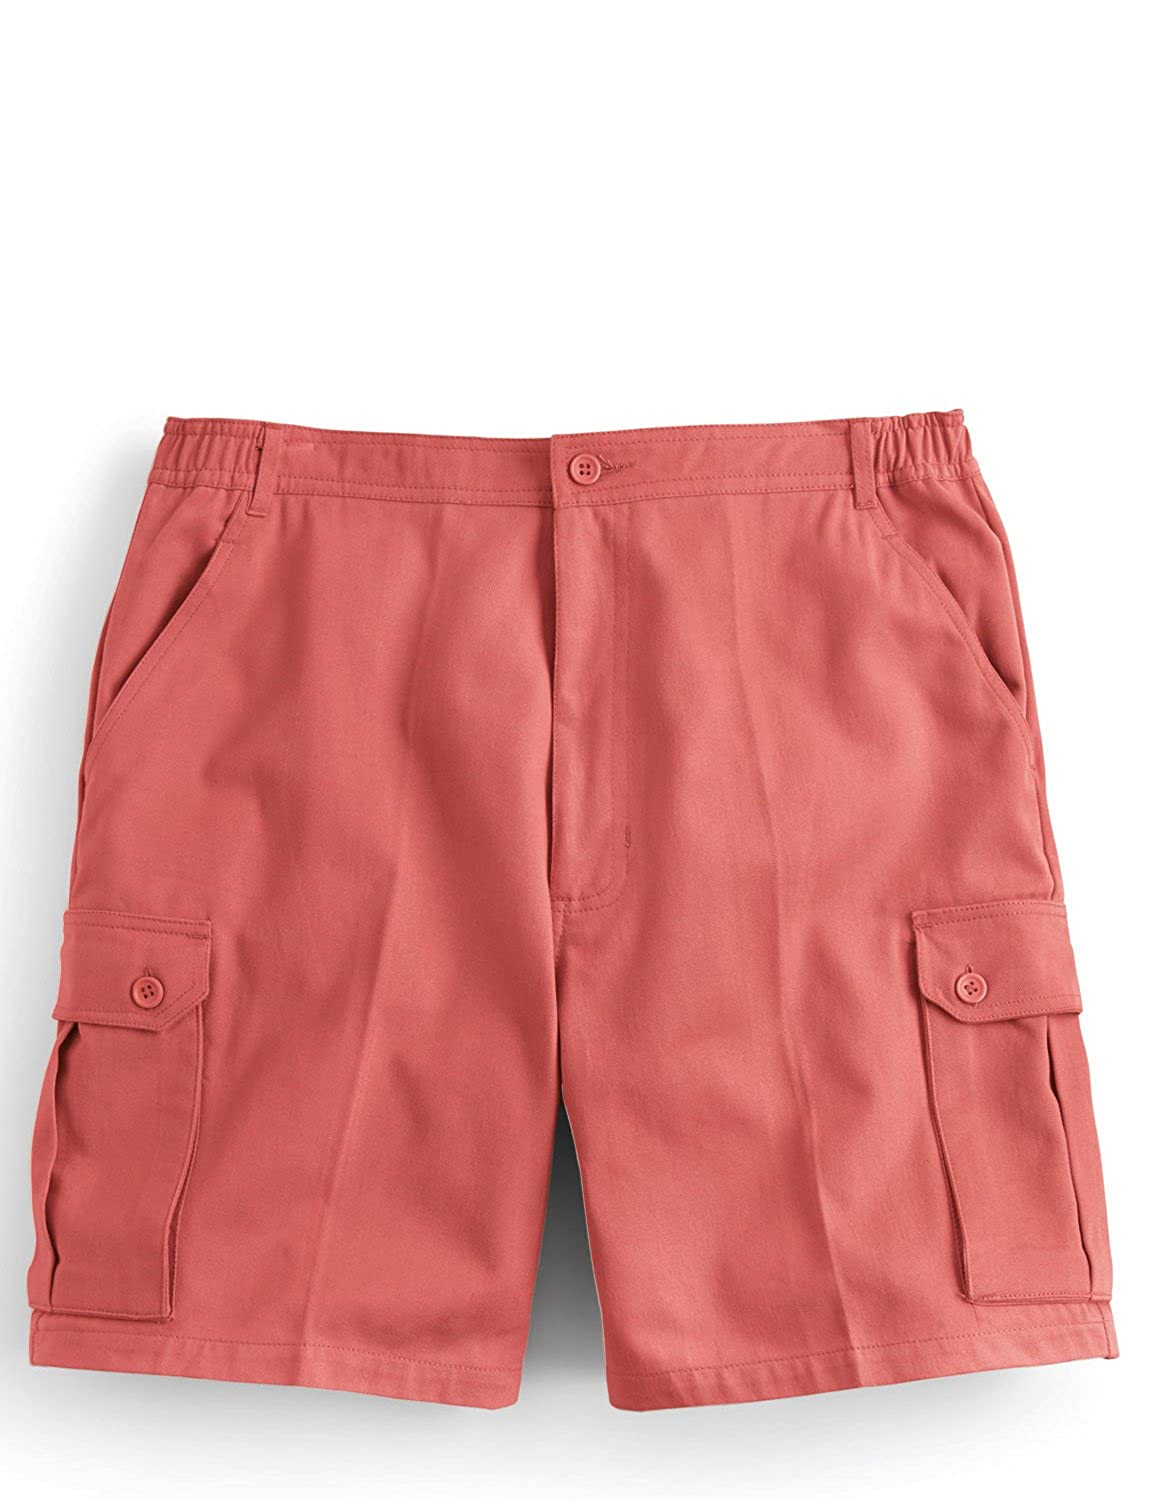 Mens Cotton Cargo Shorts With Side Elastication Chums